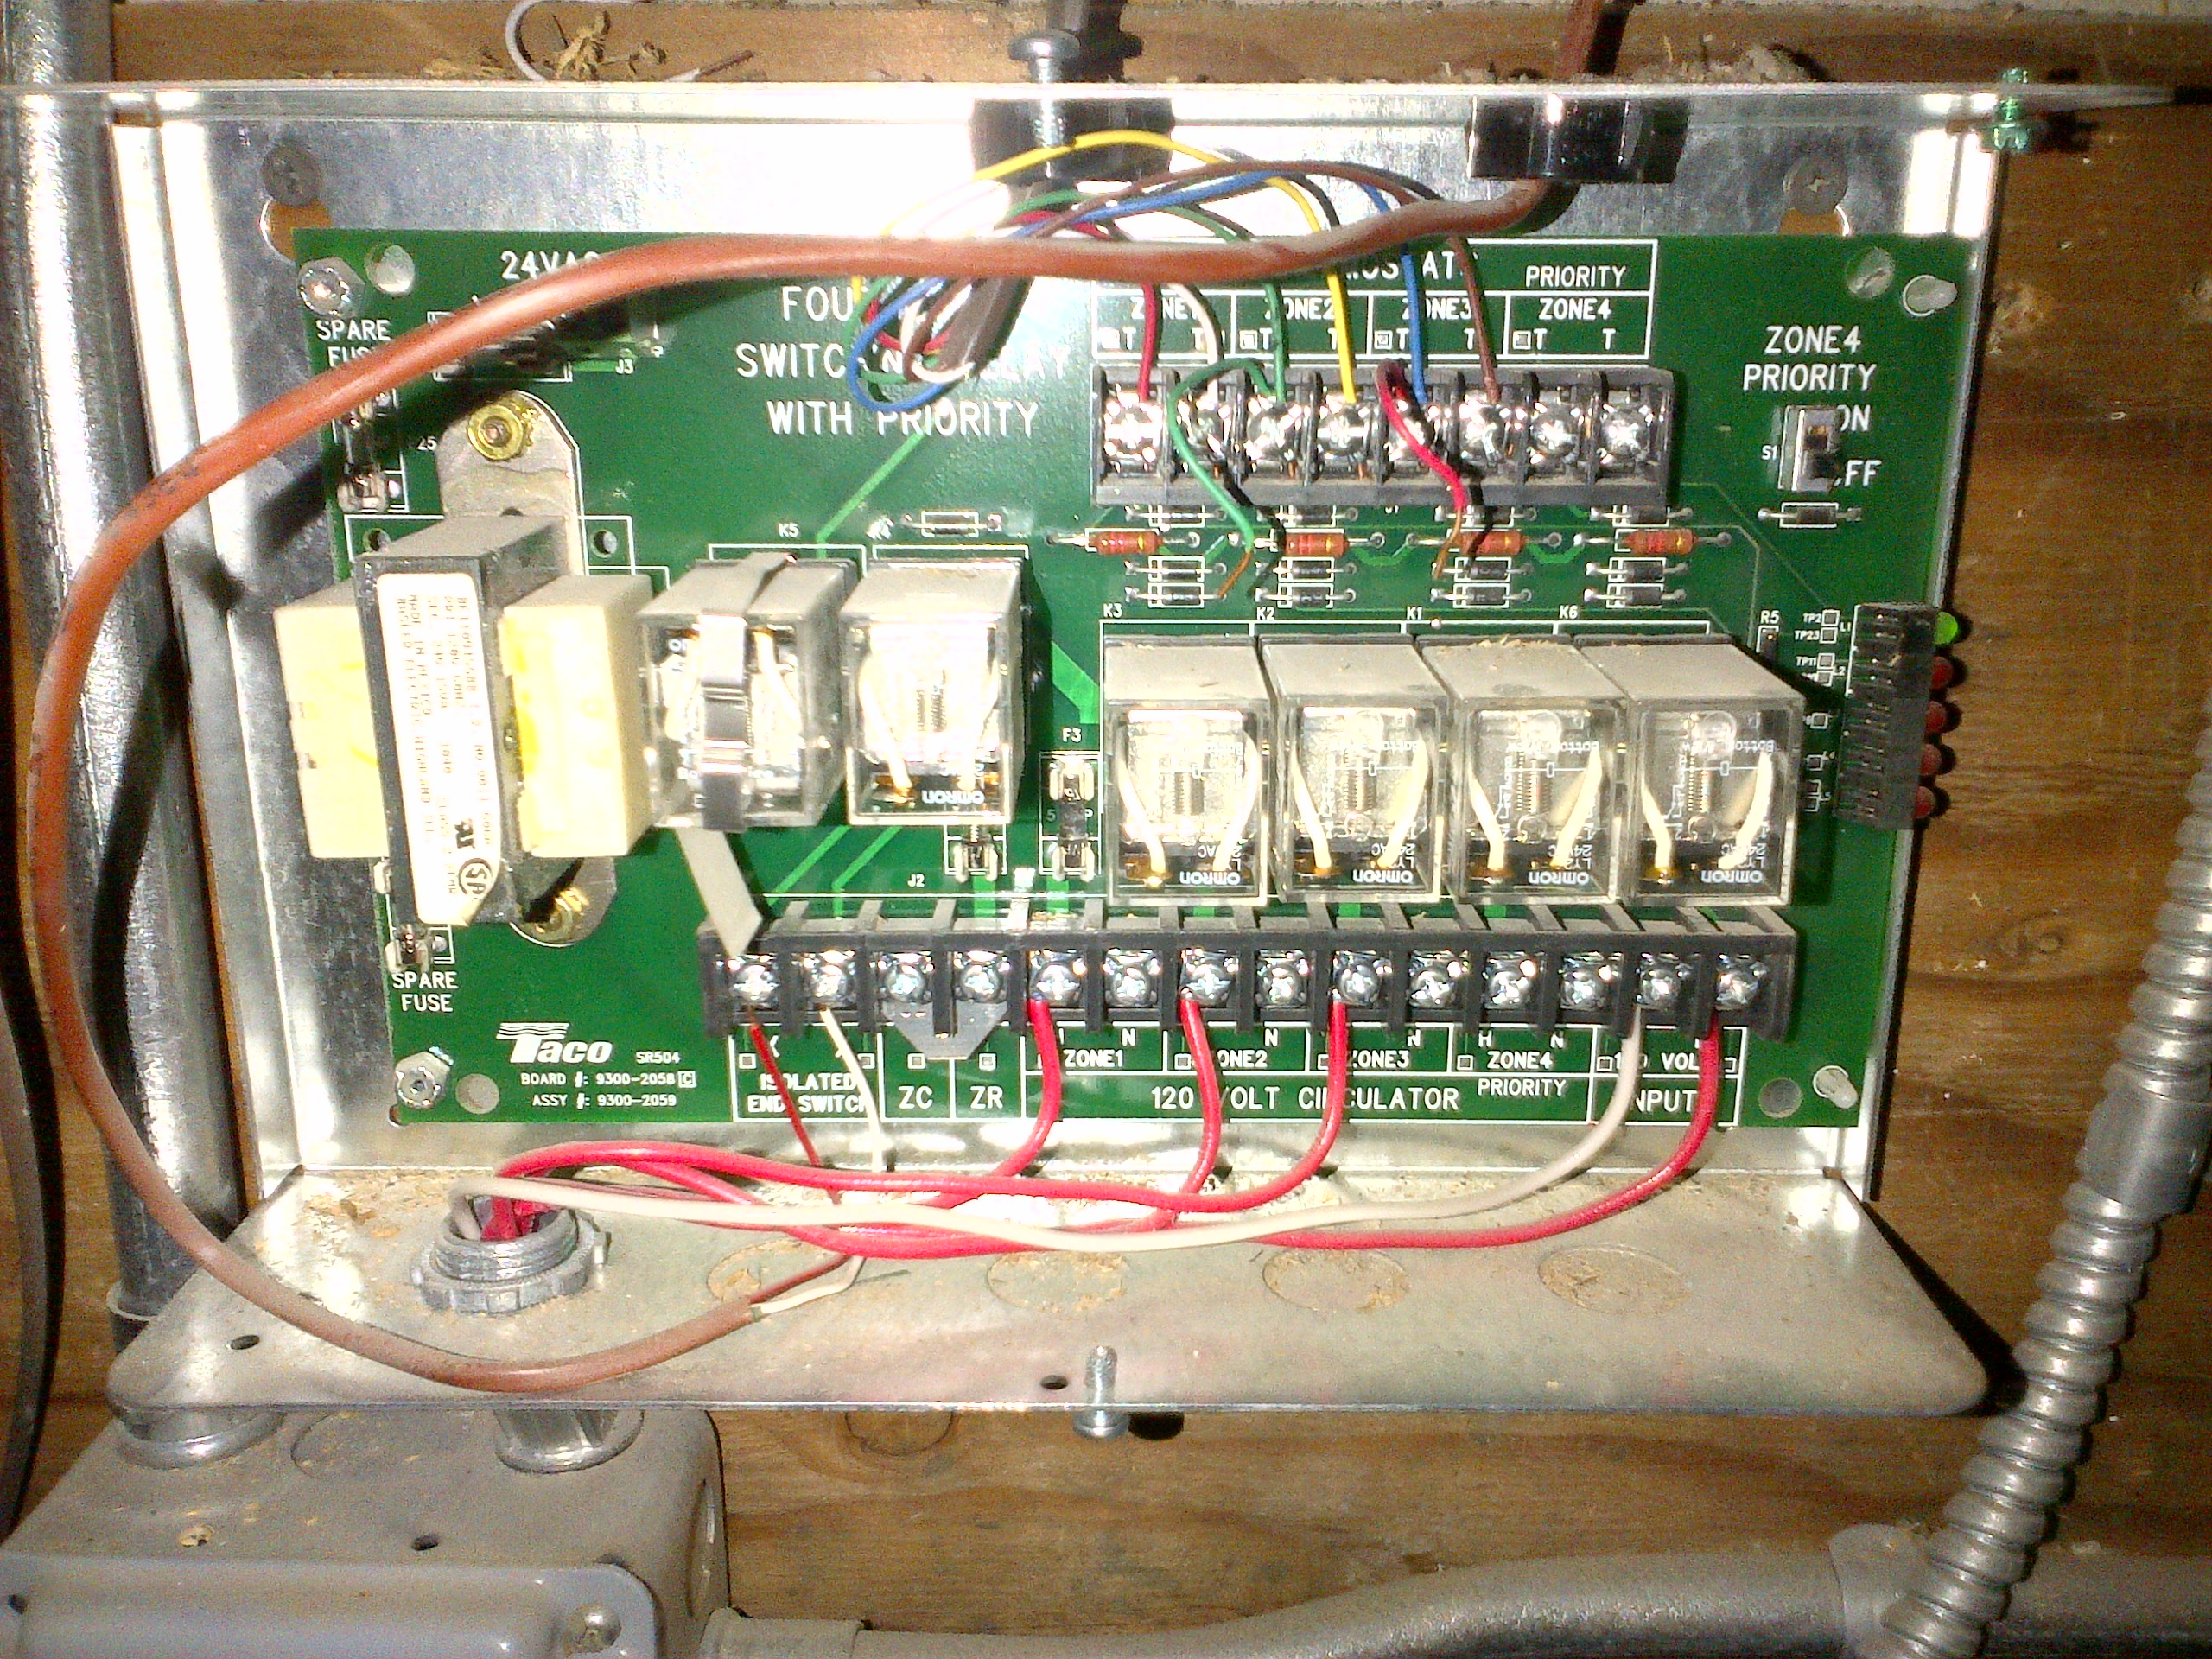 KY_3593] Taco Zone Control Wiring Diagram On Taco 1 Zone Switching Relay  Wiring DiagramMonoc Xrenket Astic Animo Mepta Mohammedshrine Librar Wiring 101